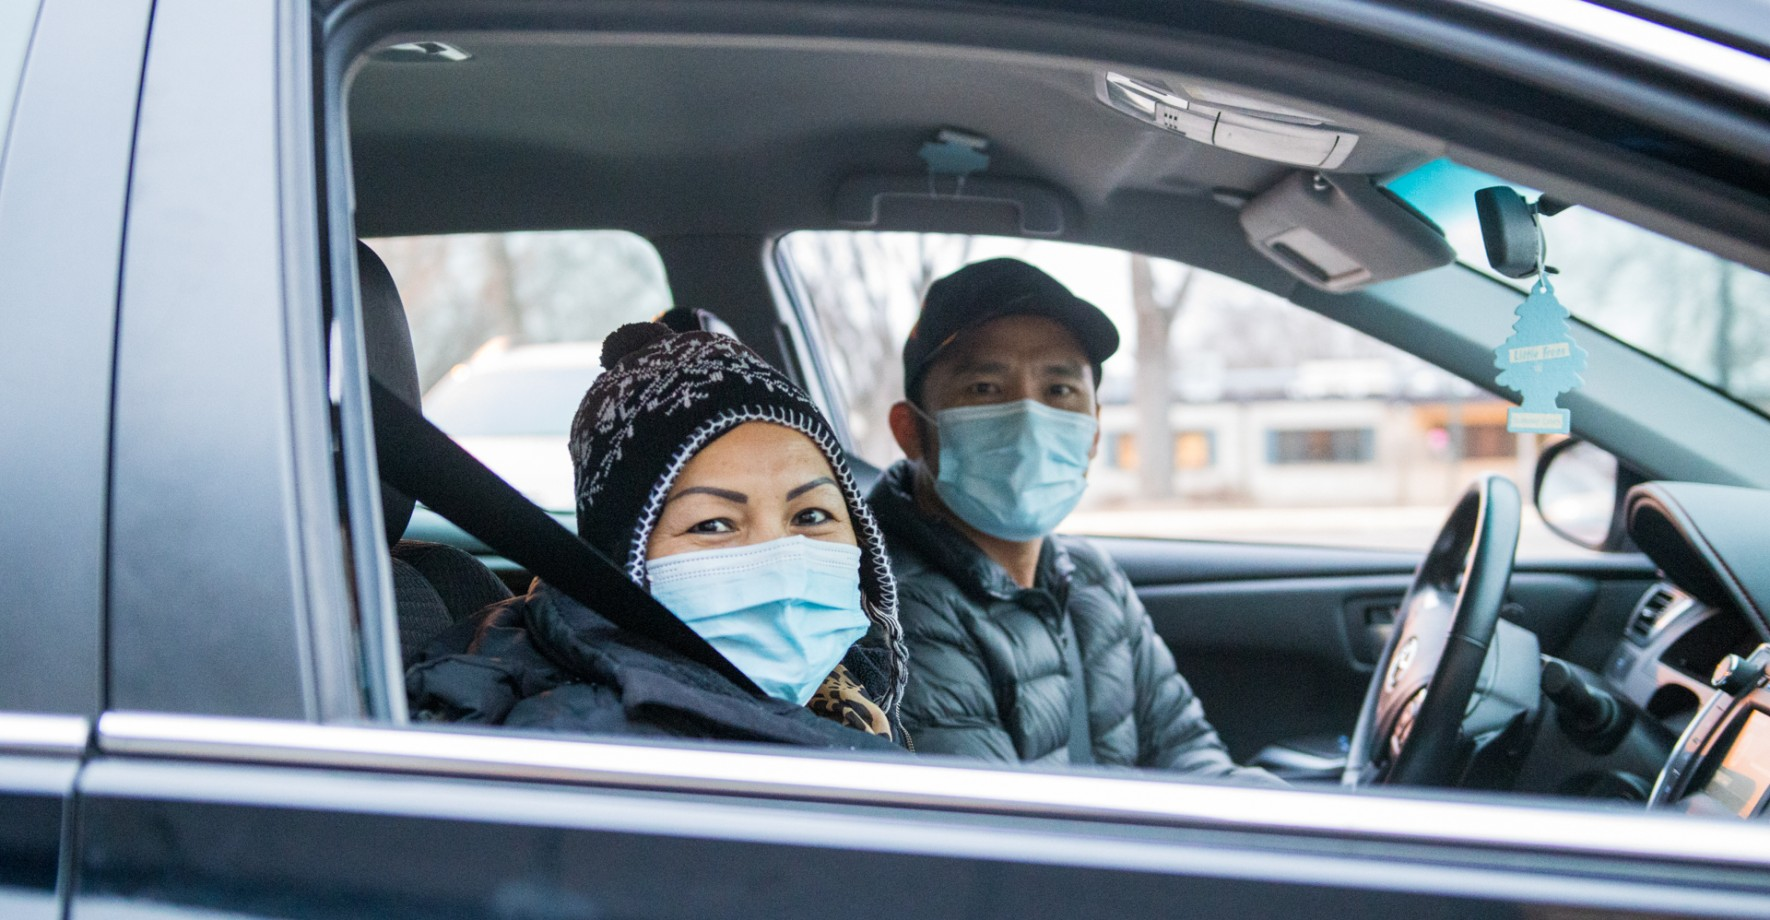 Two people in car wearing masks